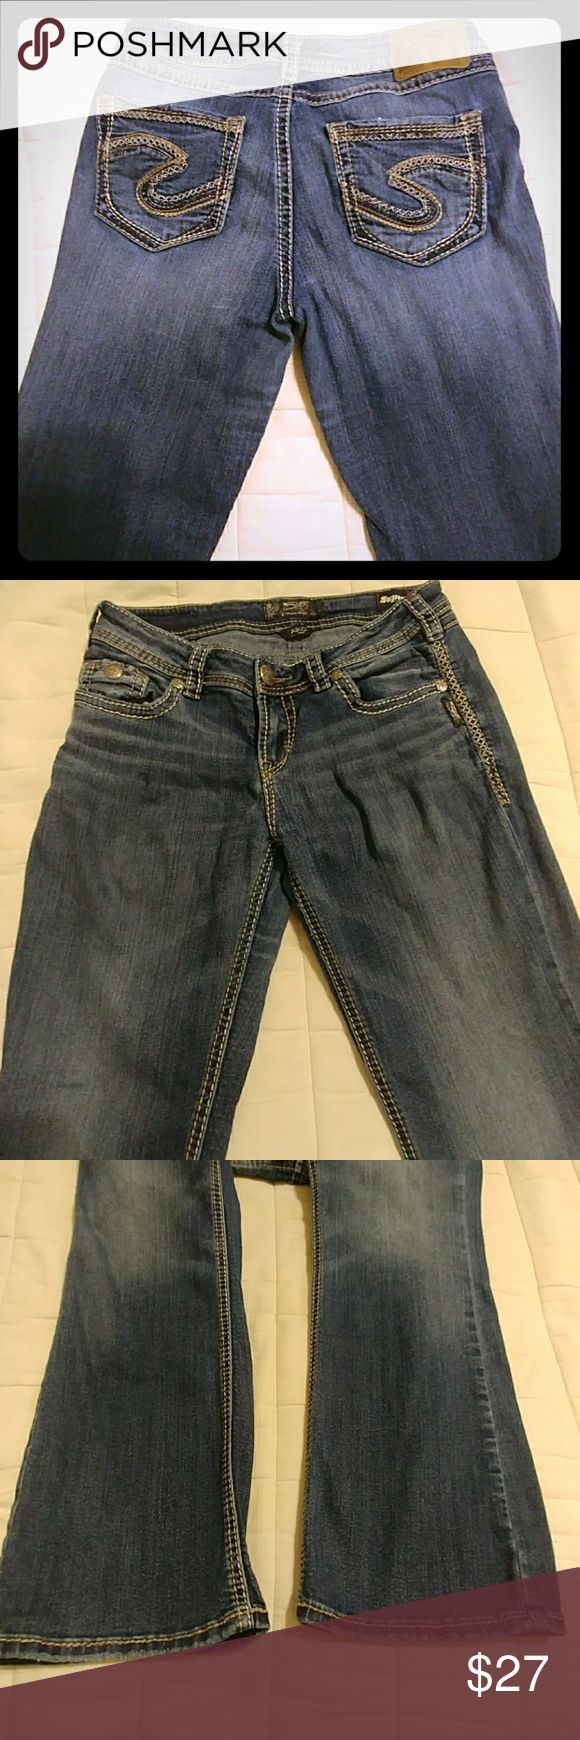 Womens Silver jeans Womens used SILVER jeans AIKO boot cut midrise 29x31. No tears or stains. Comes from a smoke-free home Silver Jeans Jeans Boot Cut